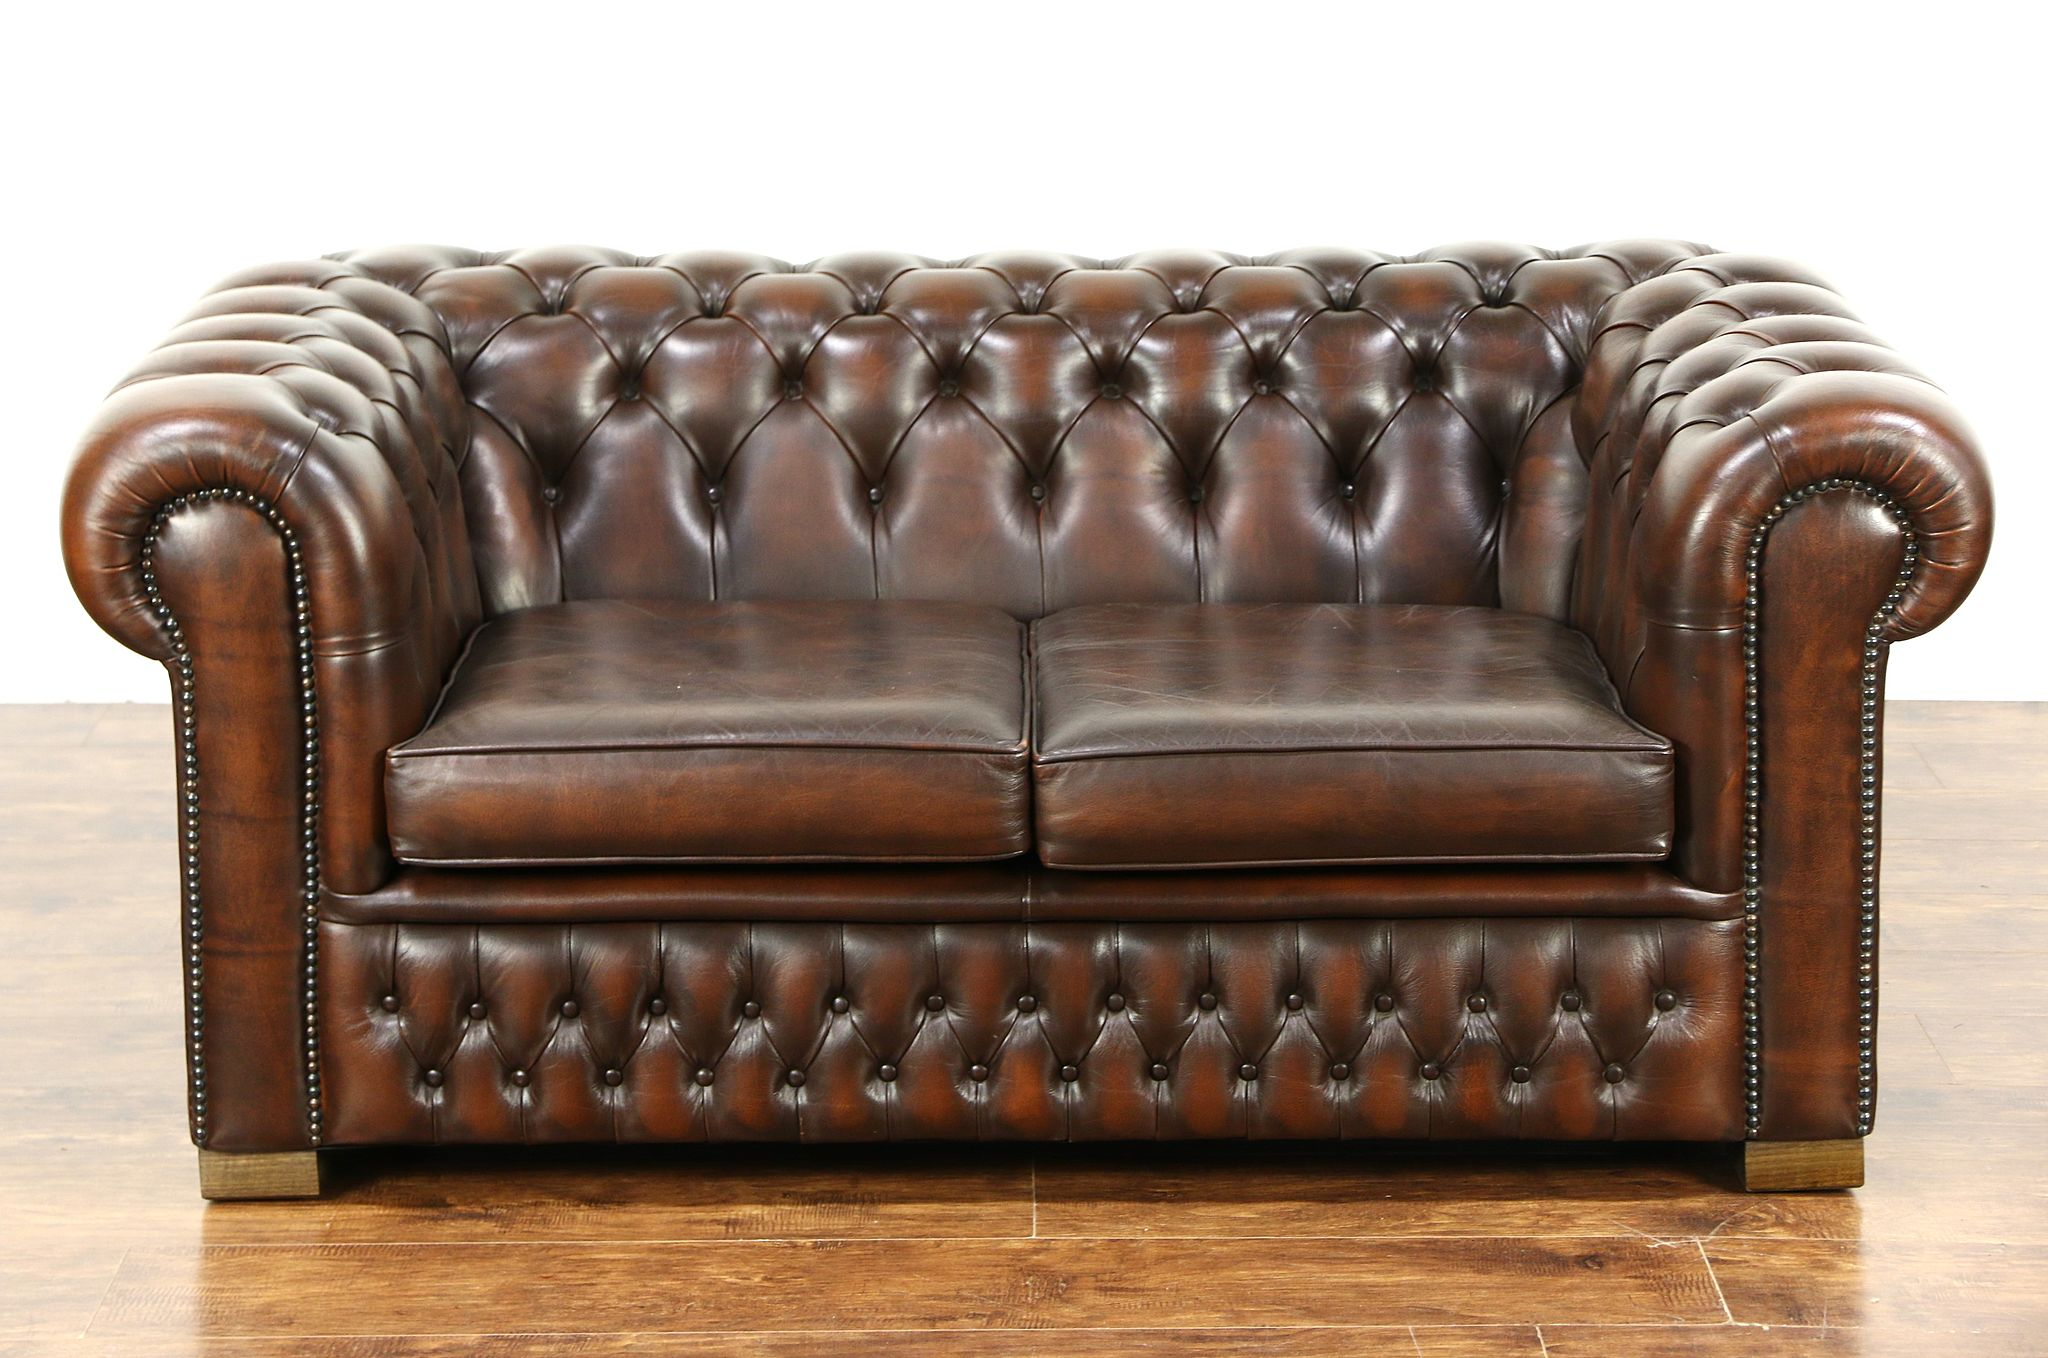 SOLD Chesterfield Tufted Brown Leather Vintage Scandinavian